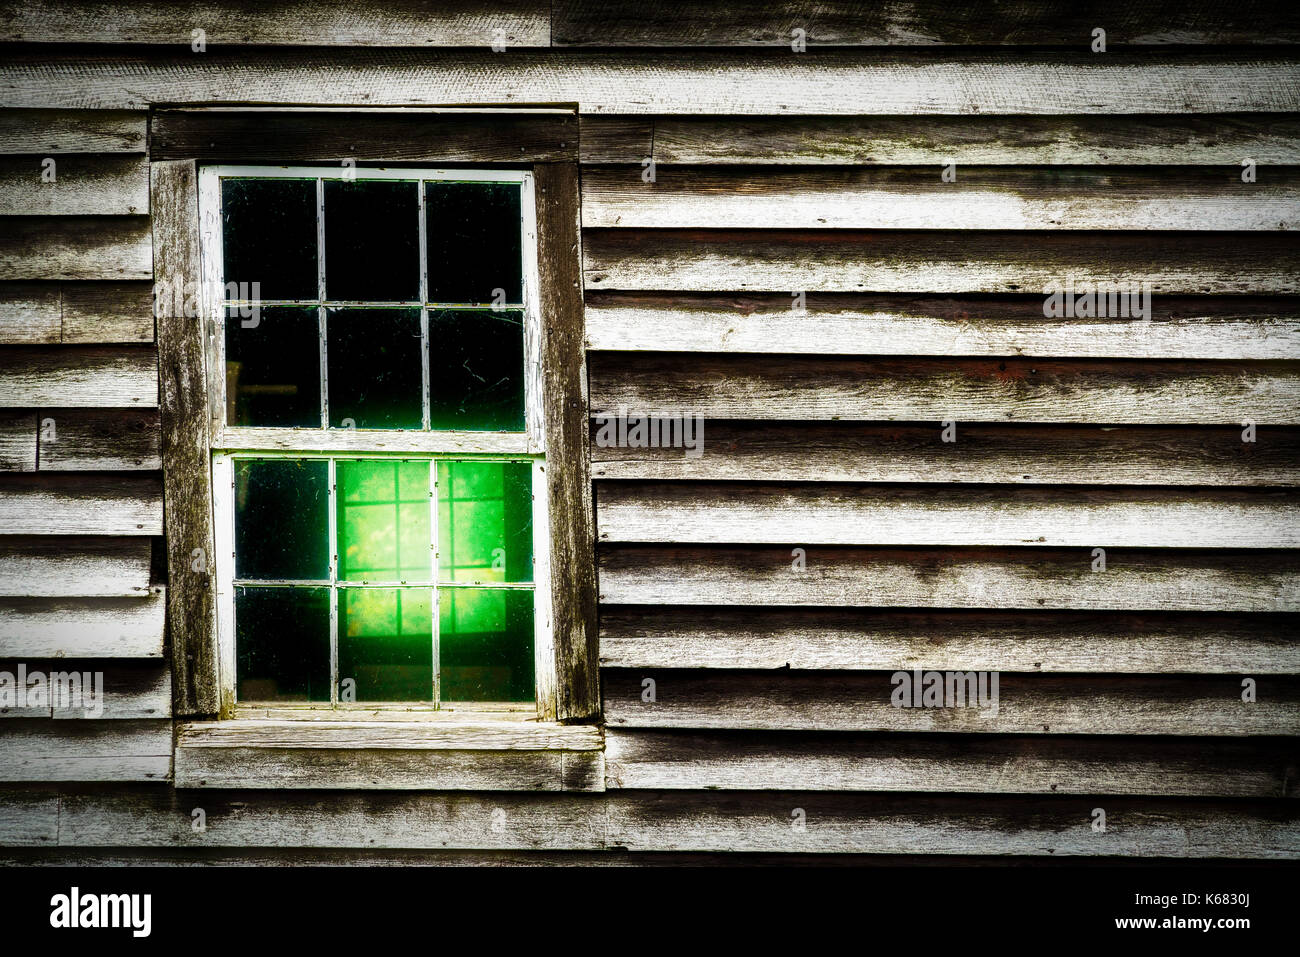 On a hill in Wisconsin, this old building is slanting and this window frame is taking most of it. - Stock Image